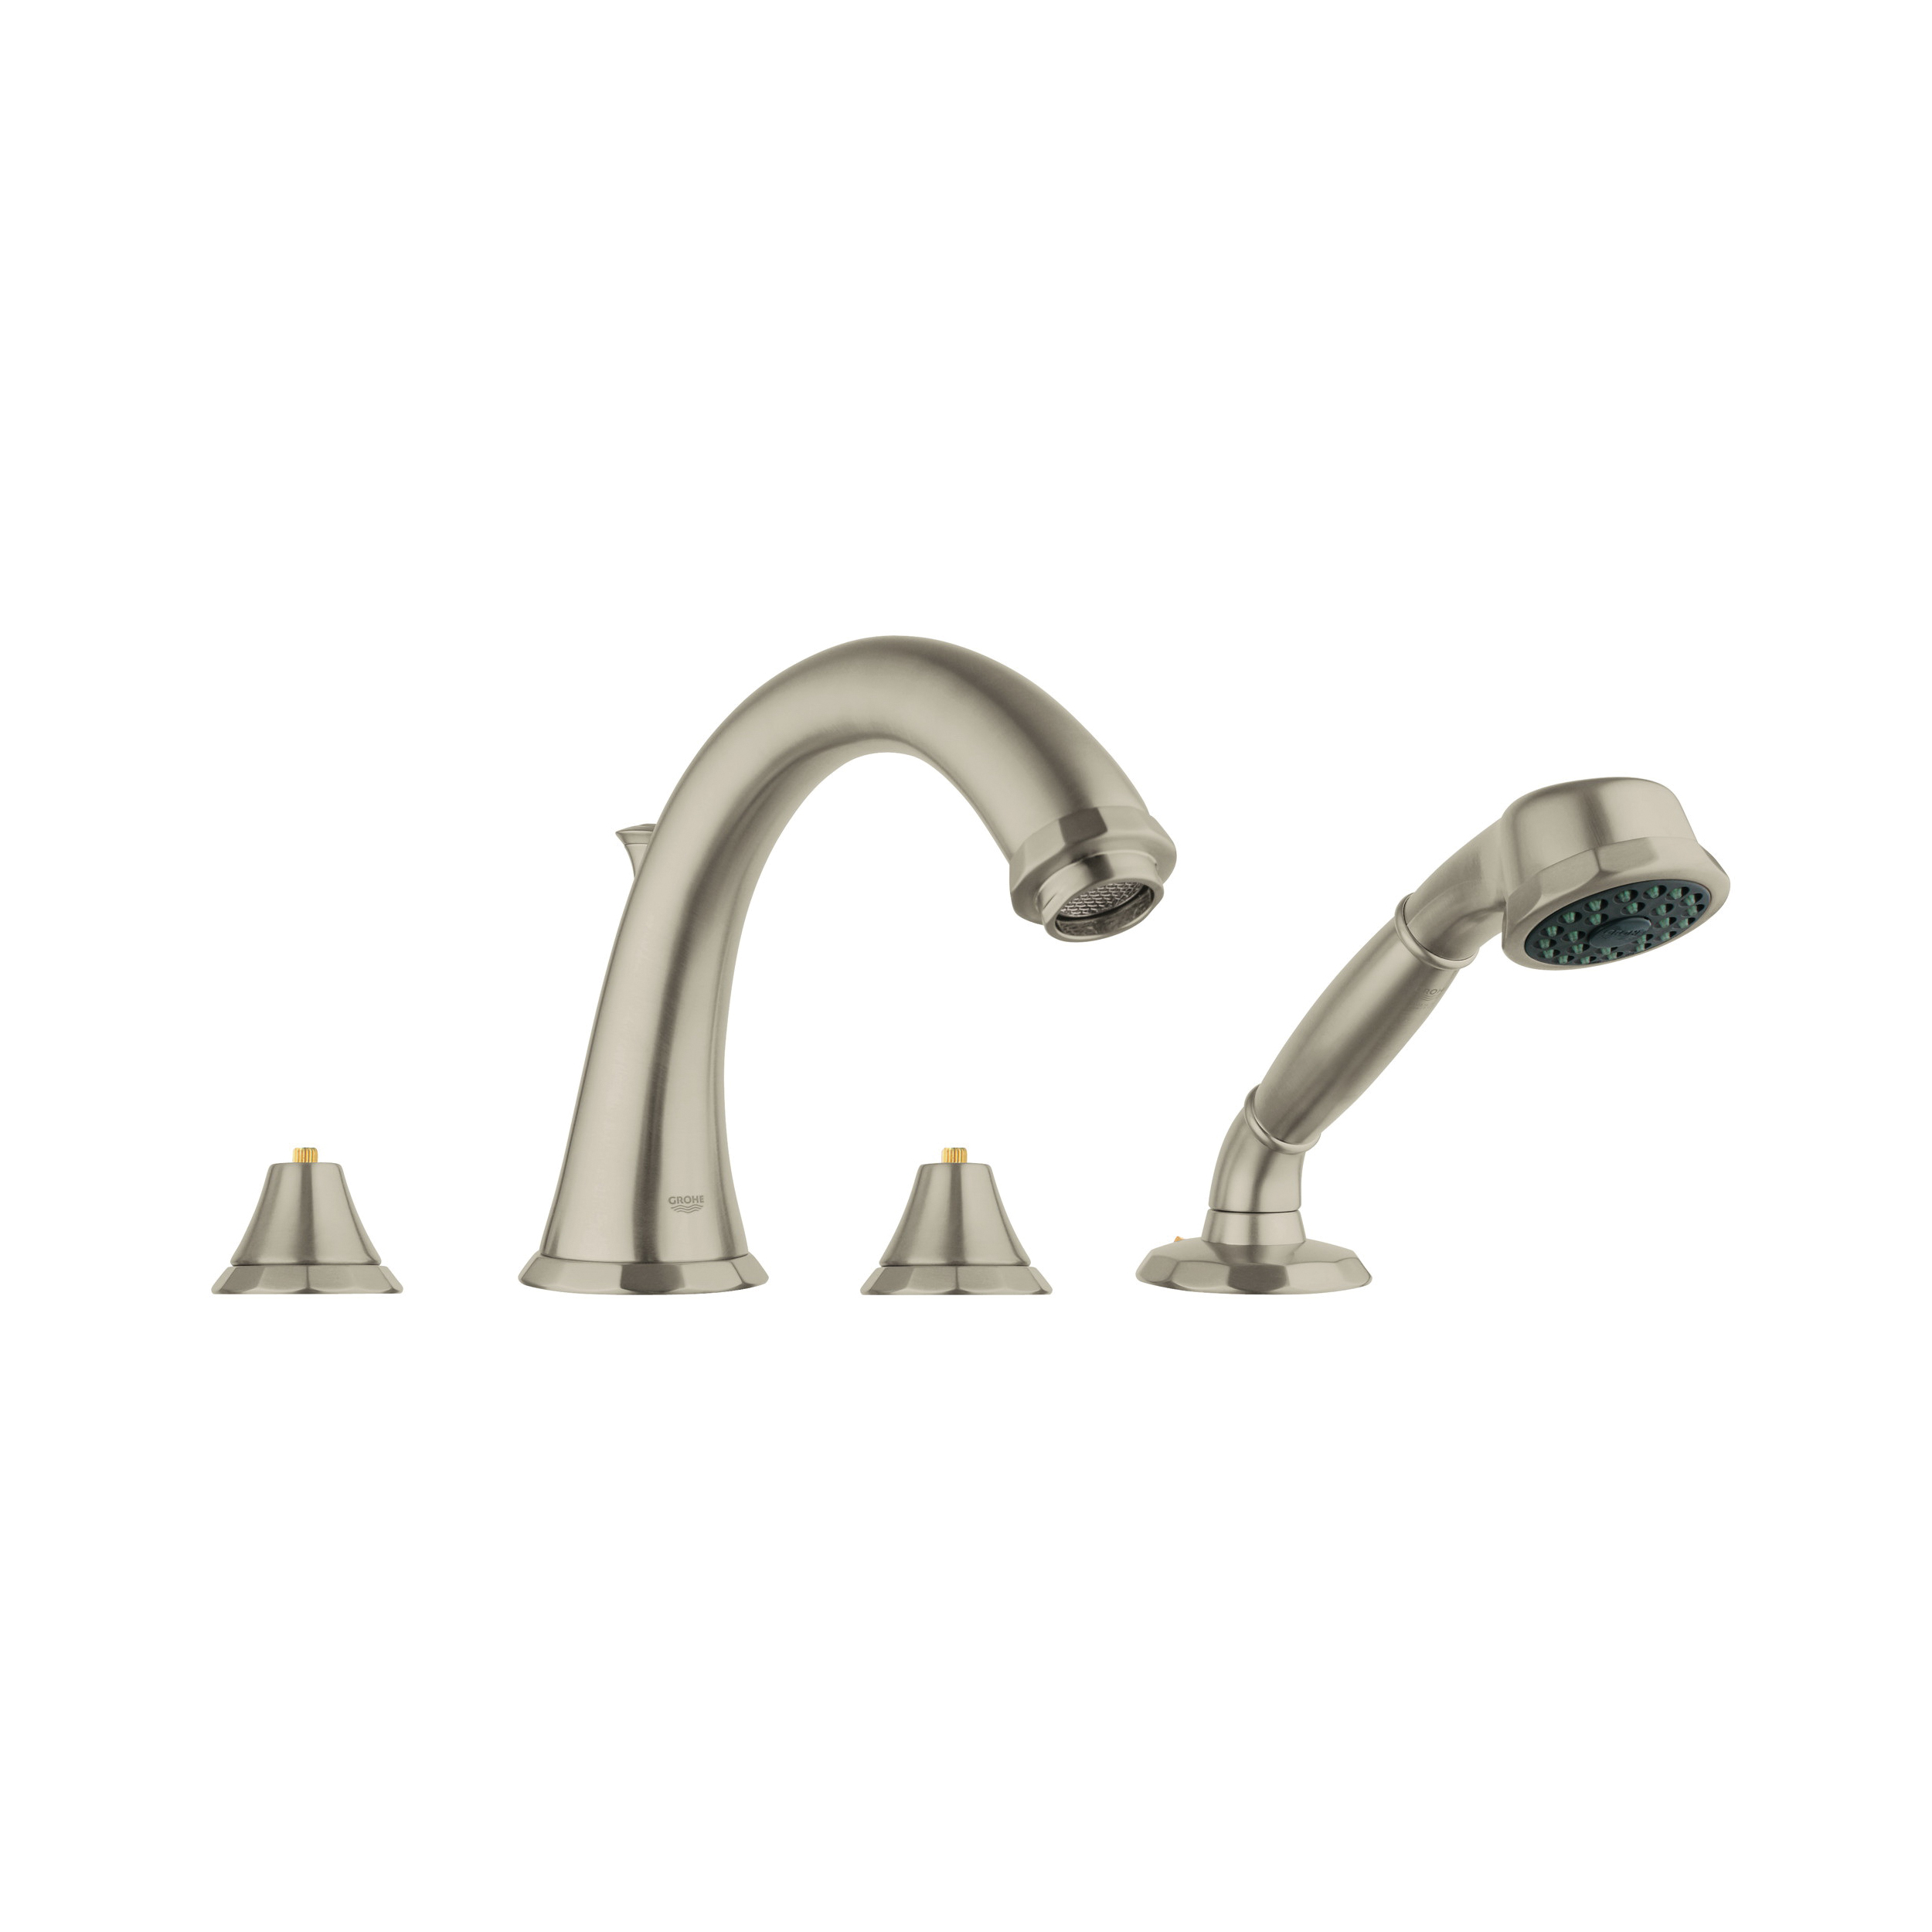 Consolidated Supply Co Grohe 25073en0 Kensington Roman